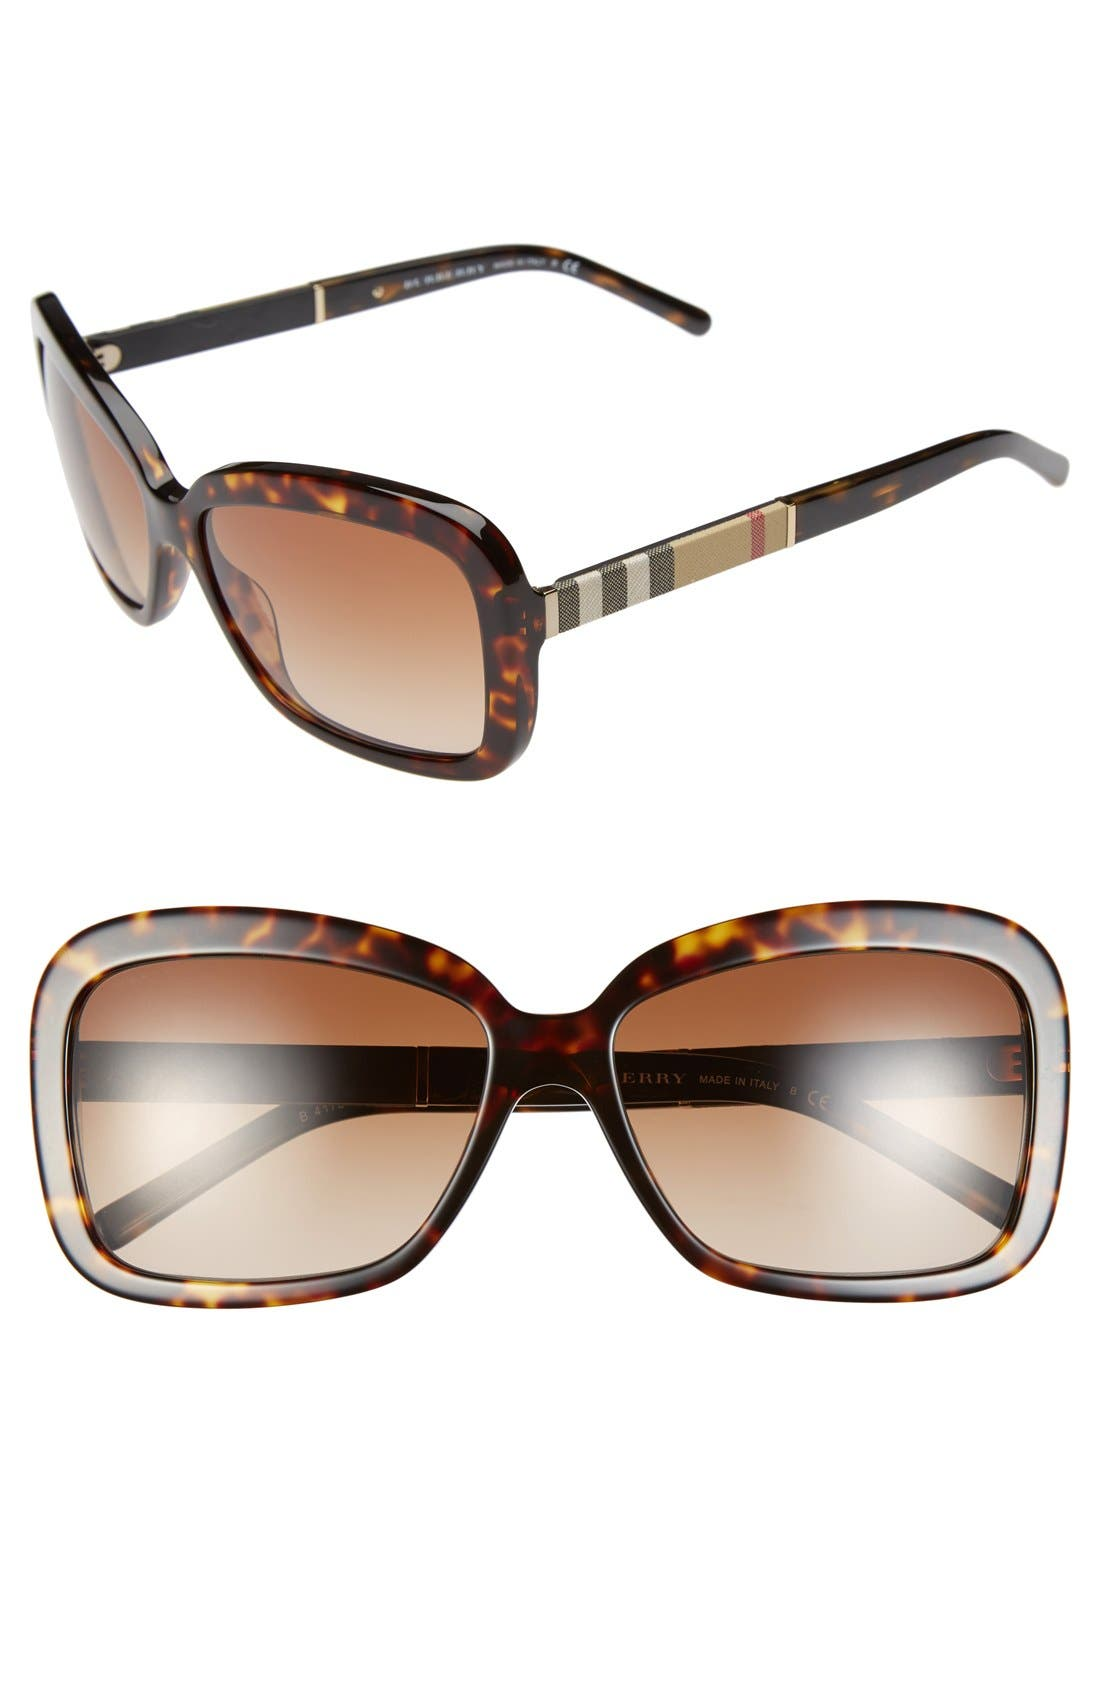 Main Image - Burberry 58mm Retro Sunglasses